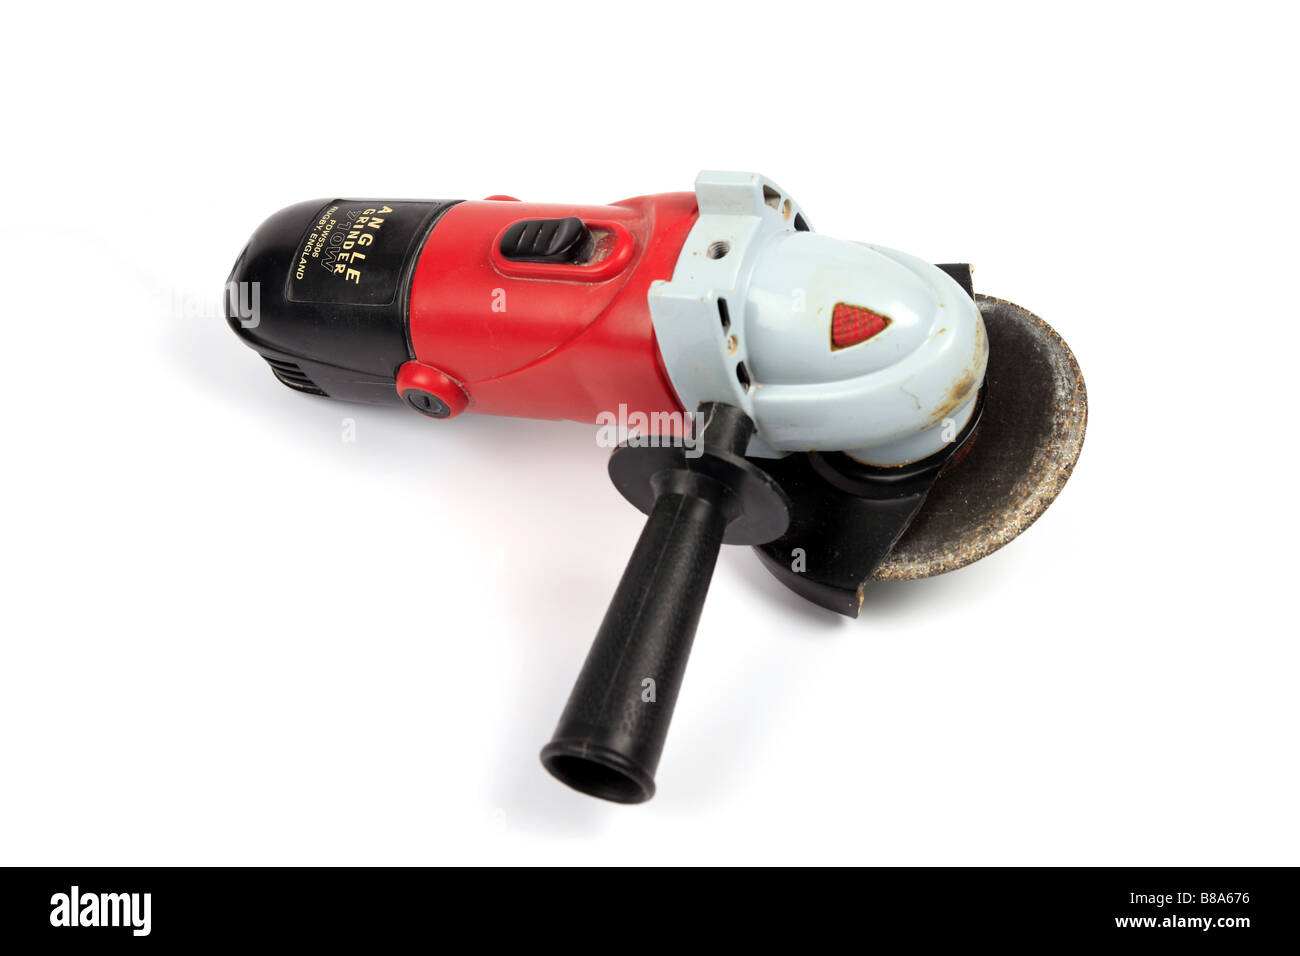 Hand held Electric Angle Grinder against a white background - Stock Image